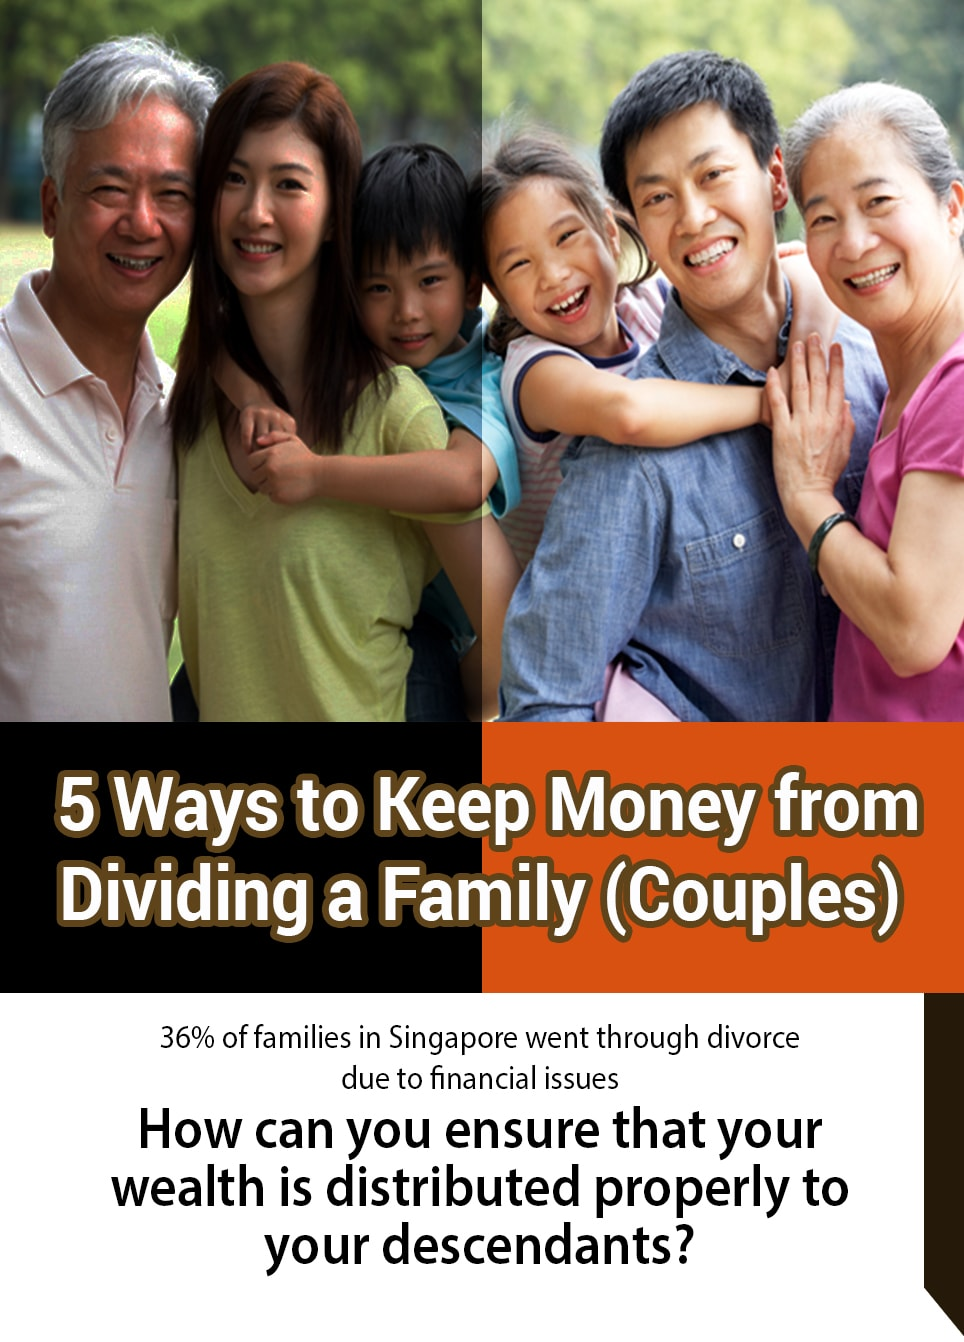 5 Ways to Keep Money from Dividing a Family